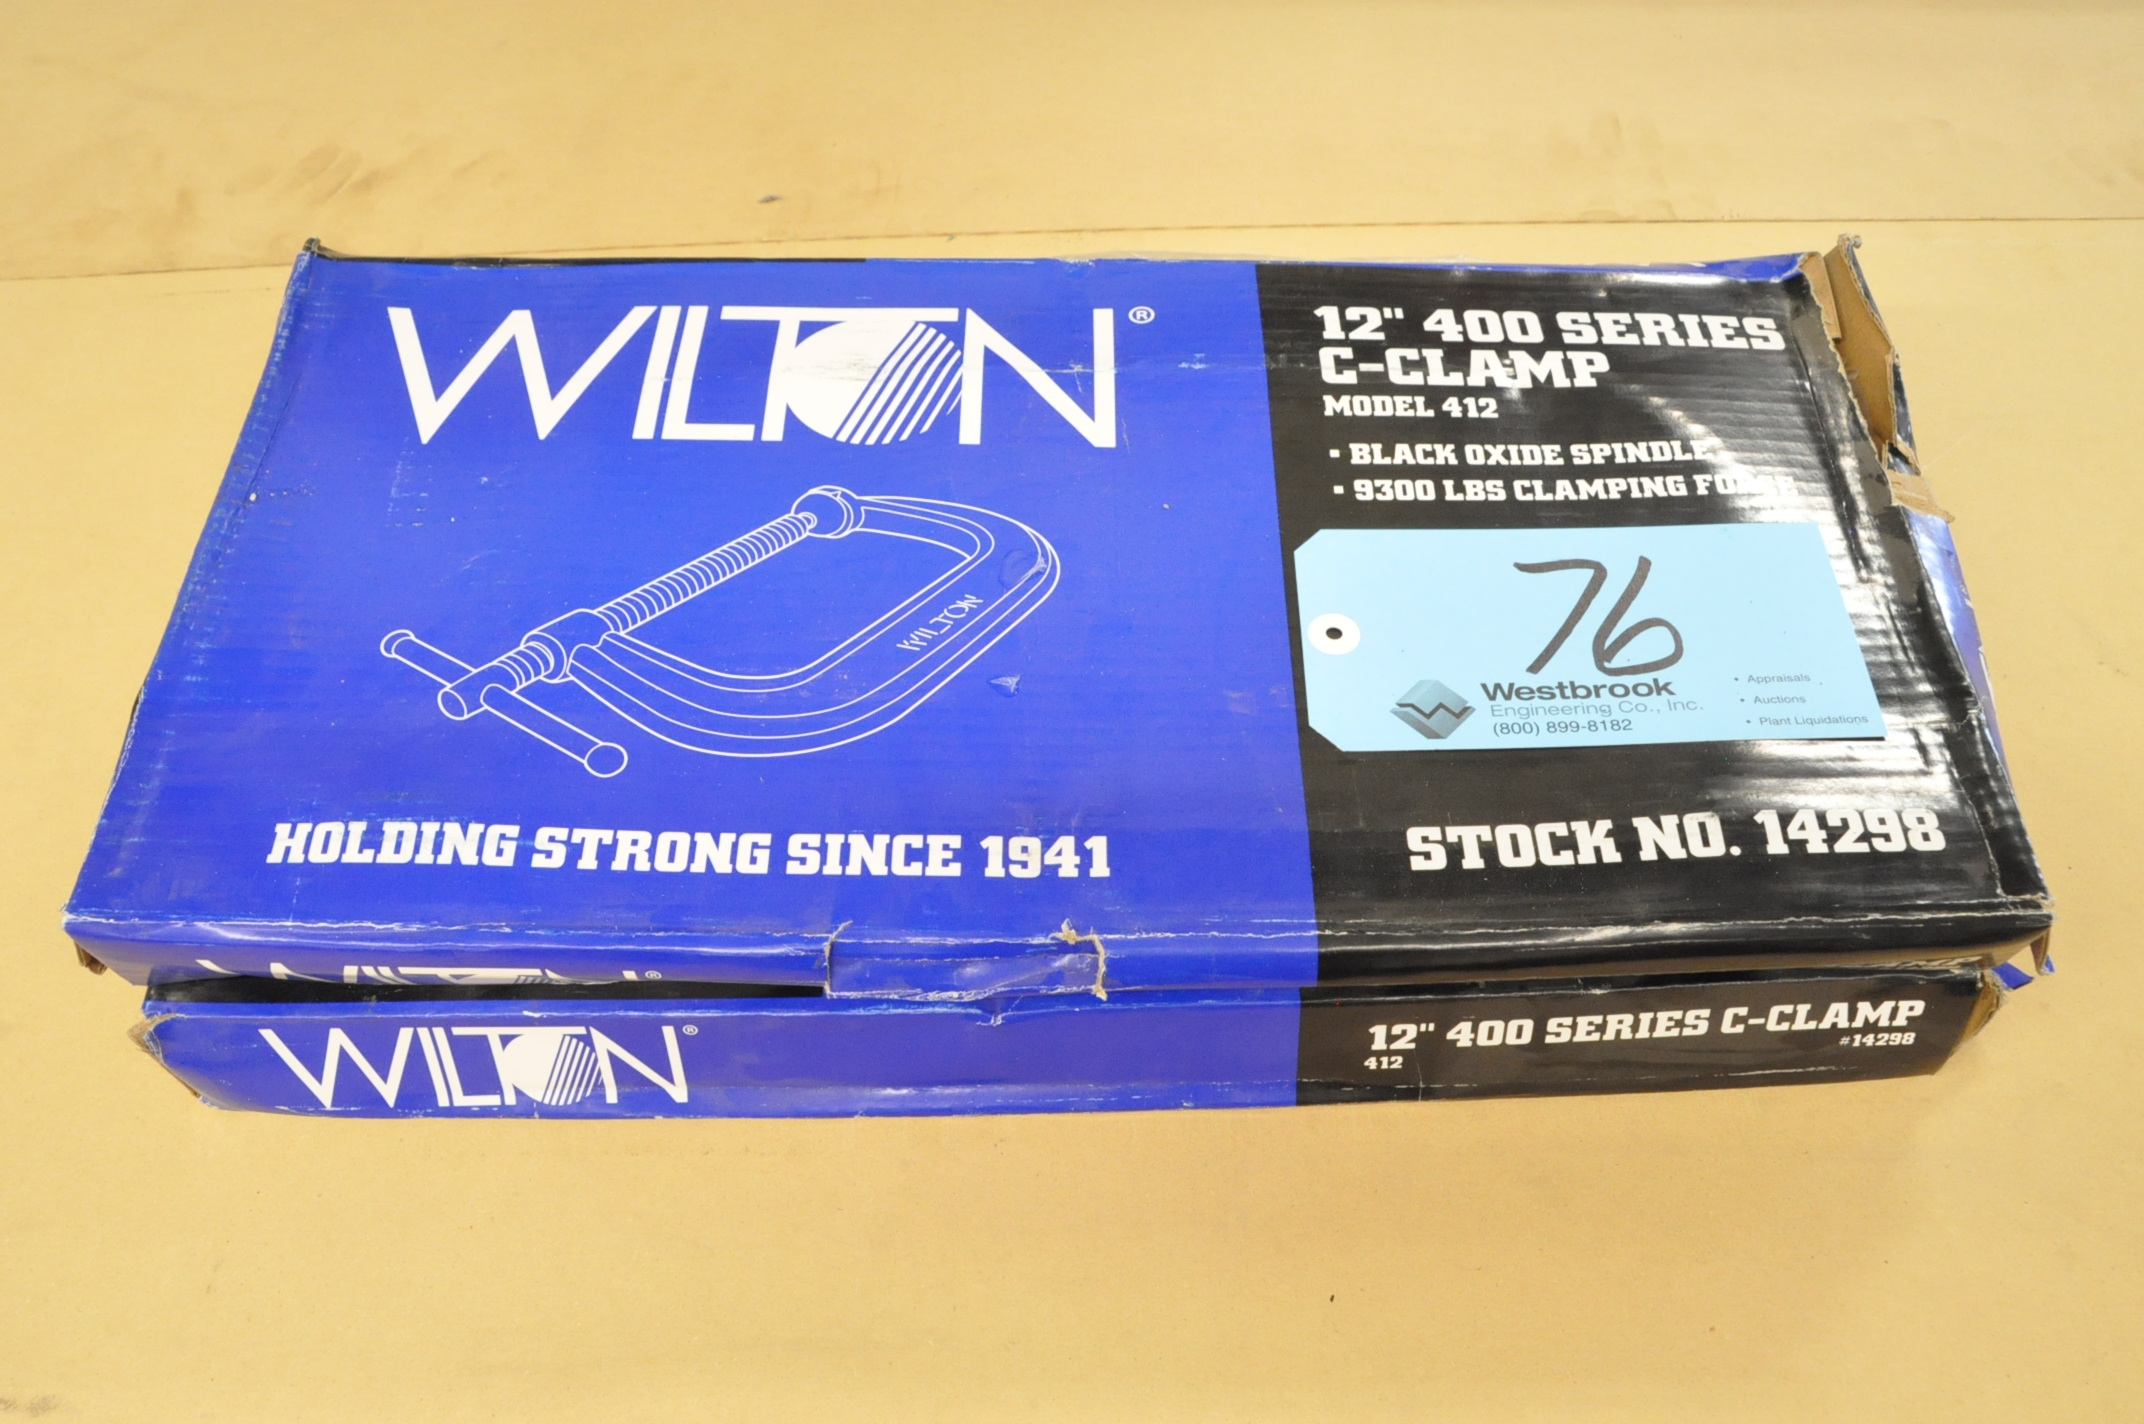 "Lot-(2) Wilton No. 412, 12"" C-Clamps, (Packaged)"